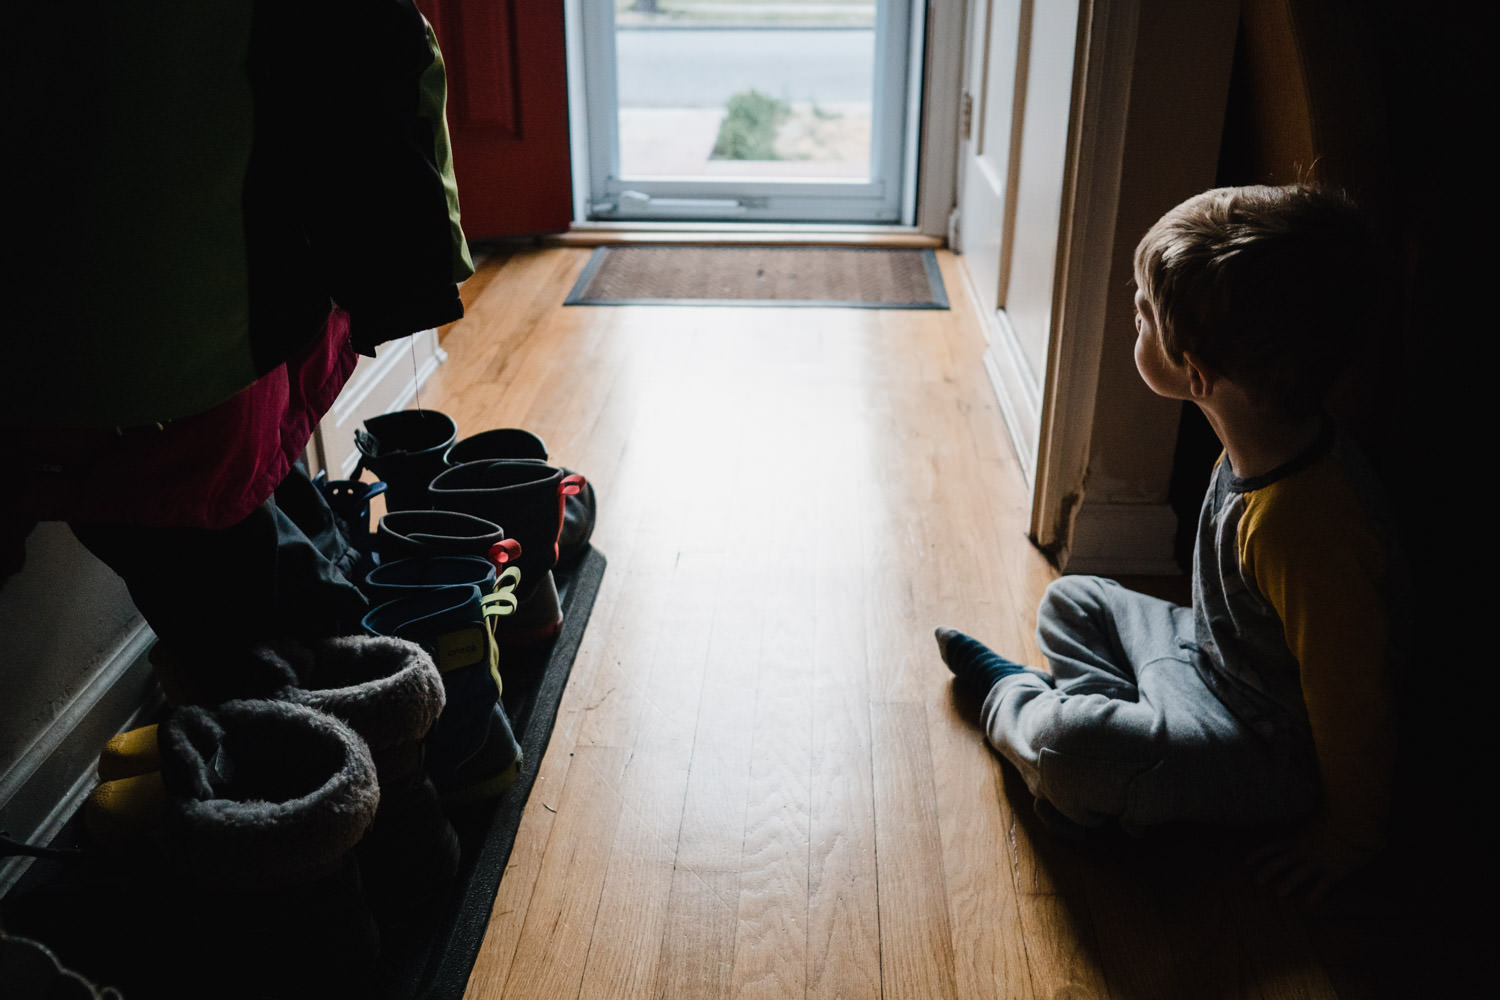 A little boy sits in a hallway and looks out the front door.